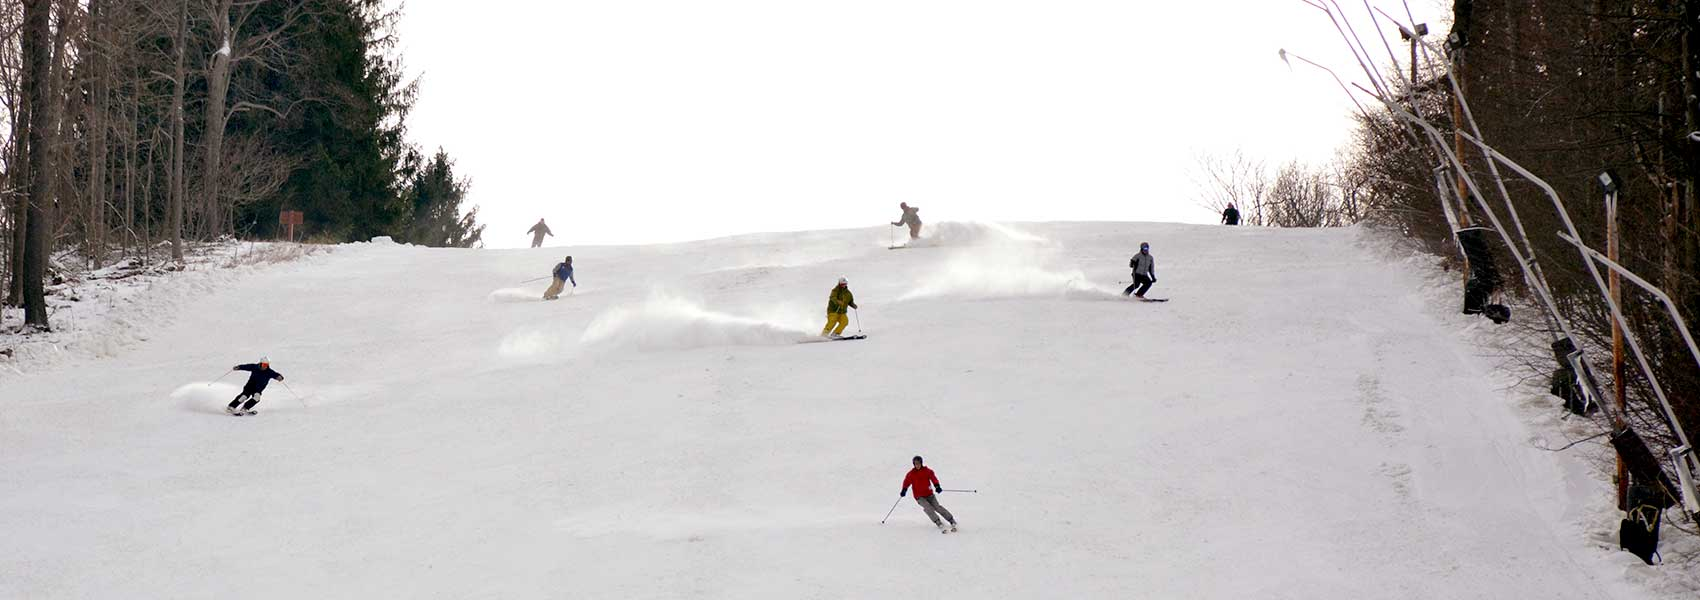 opening-day-skiers-coming-down-slope